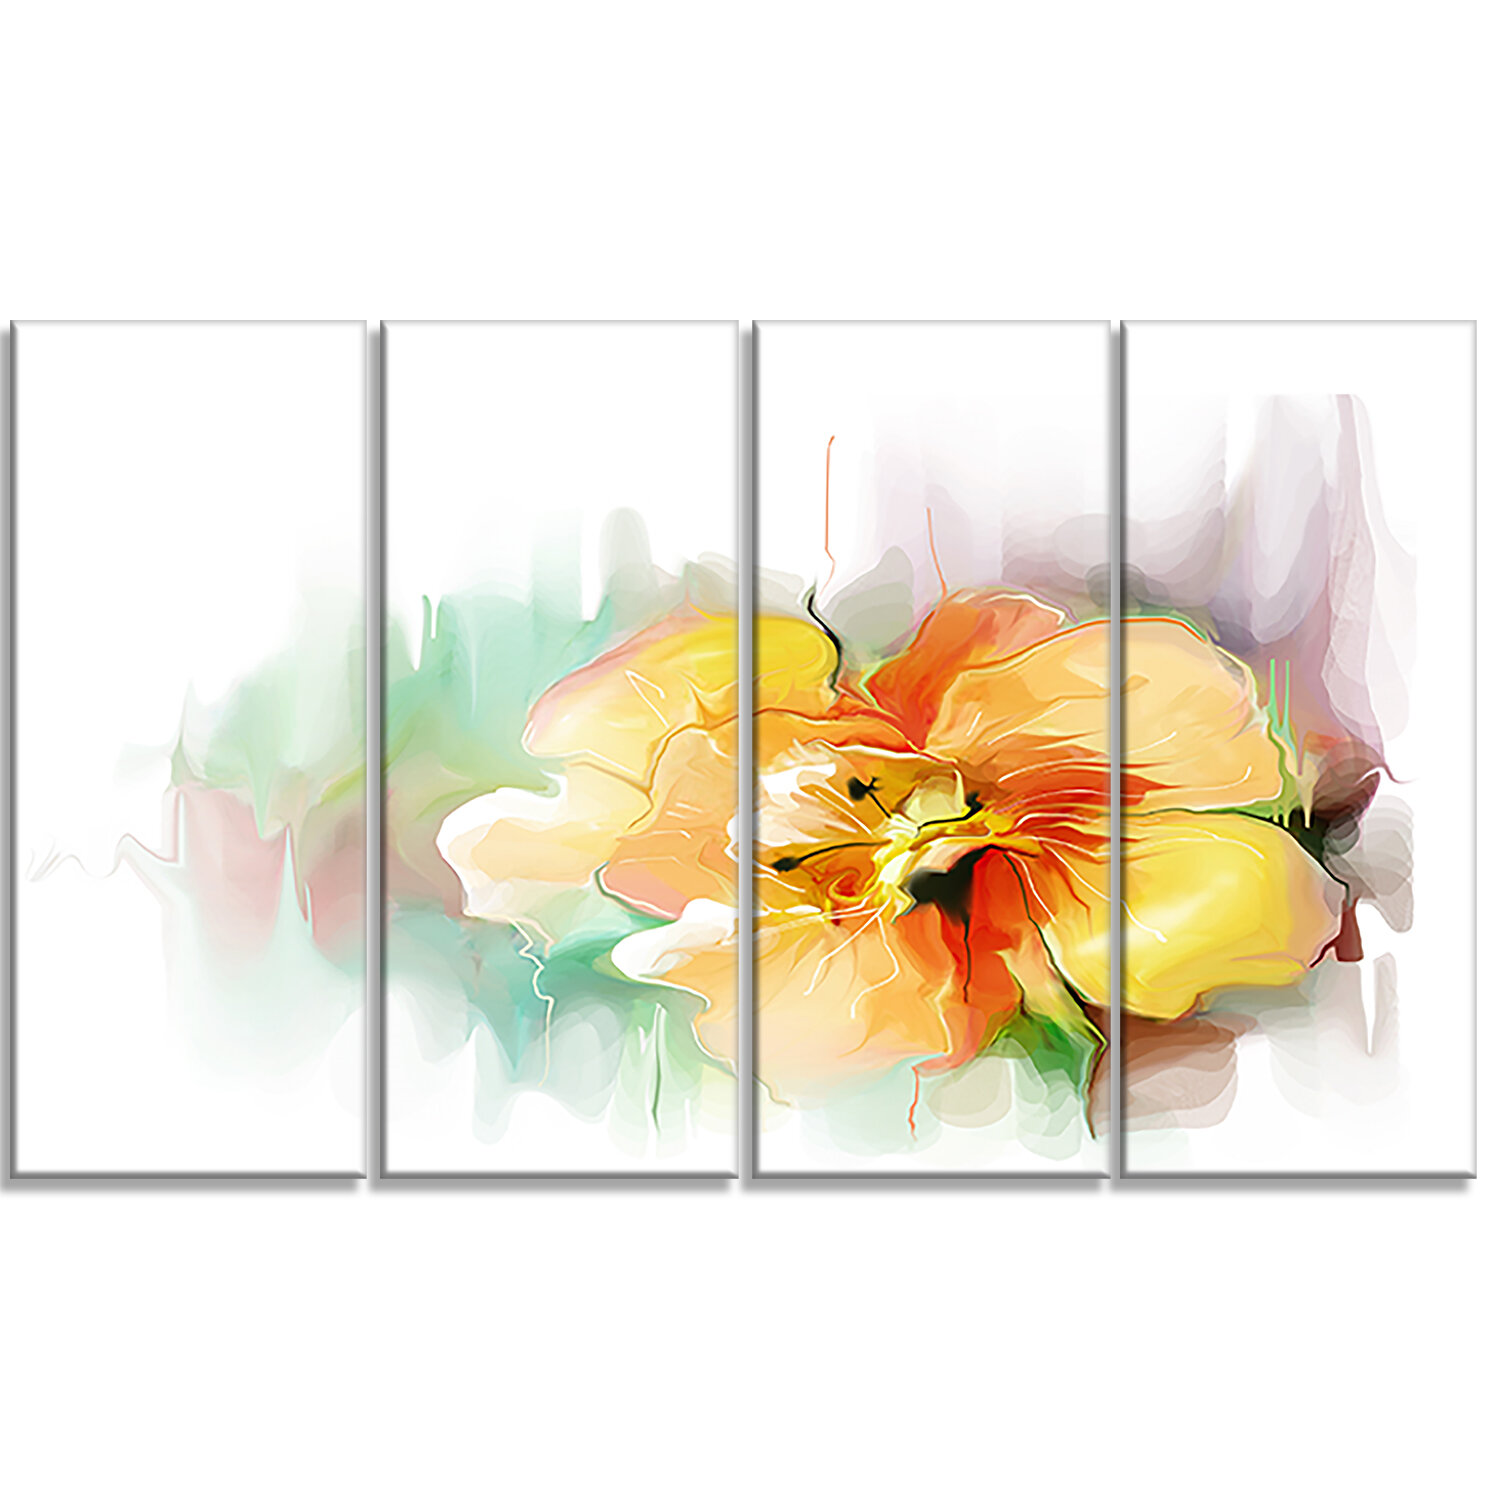 Designart Beautiful Yellow Flower Drawing 4 Piece Painting Print